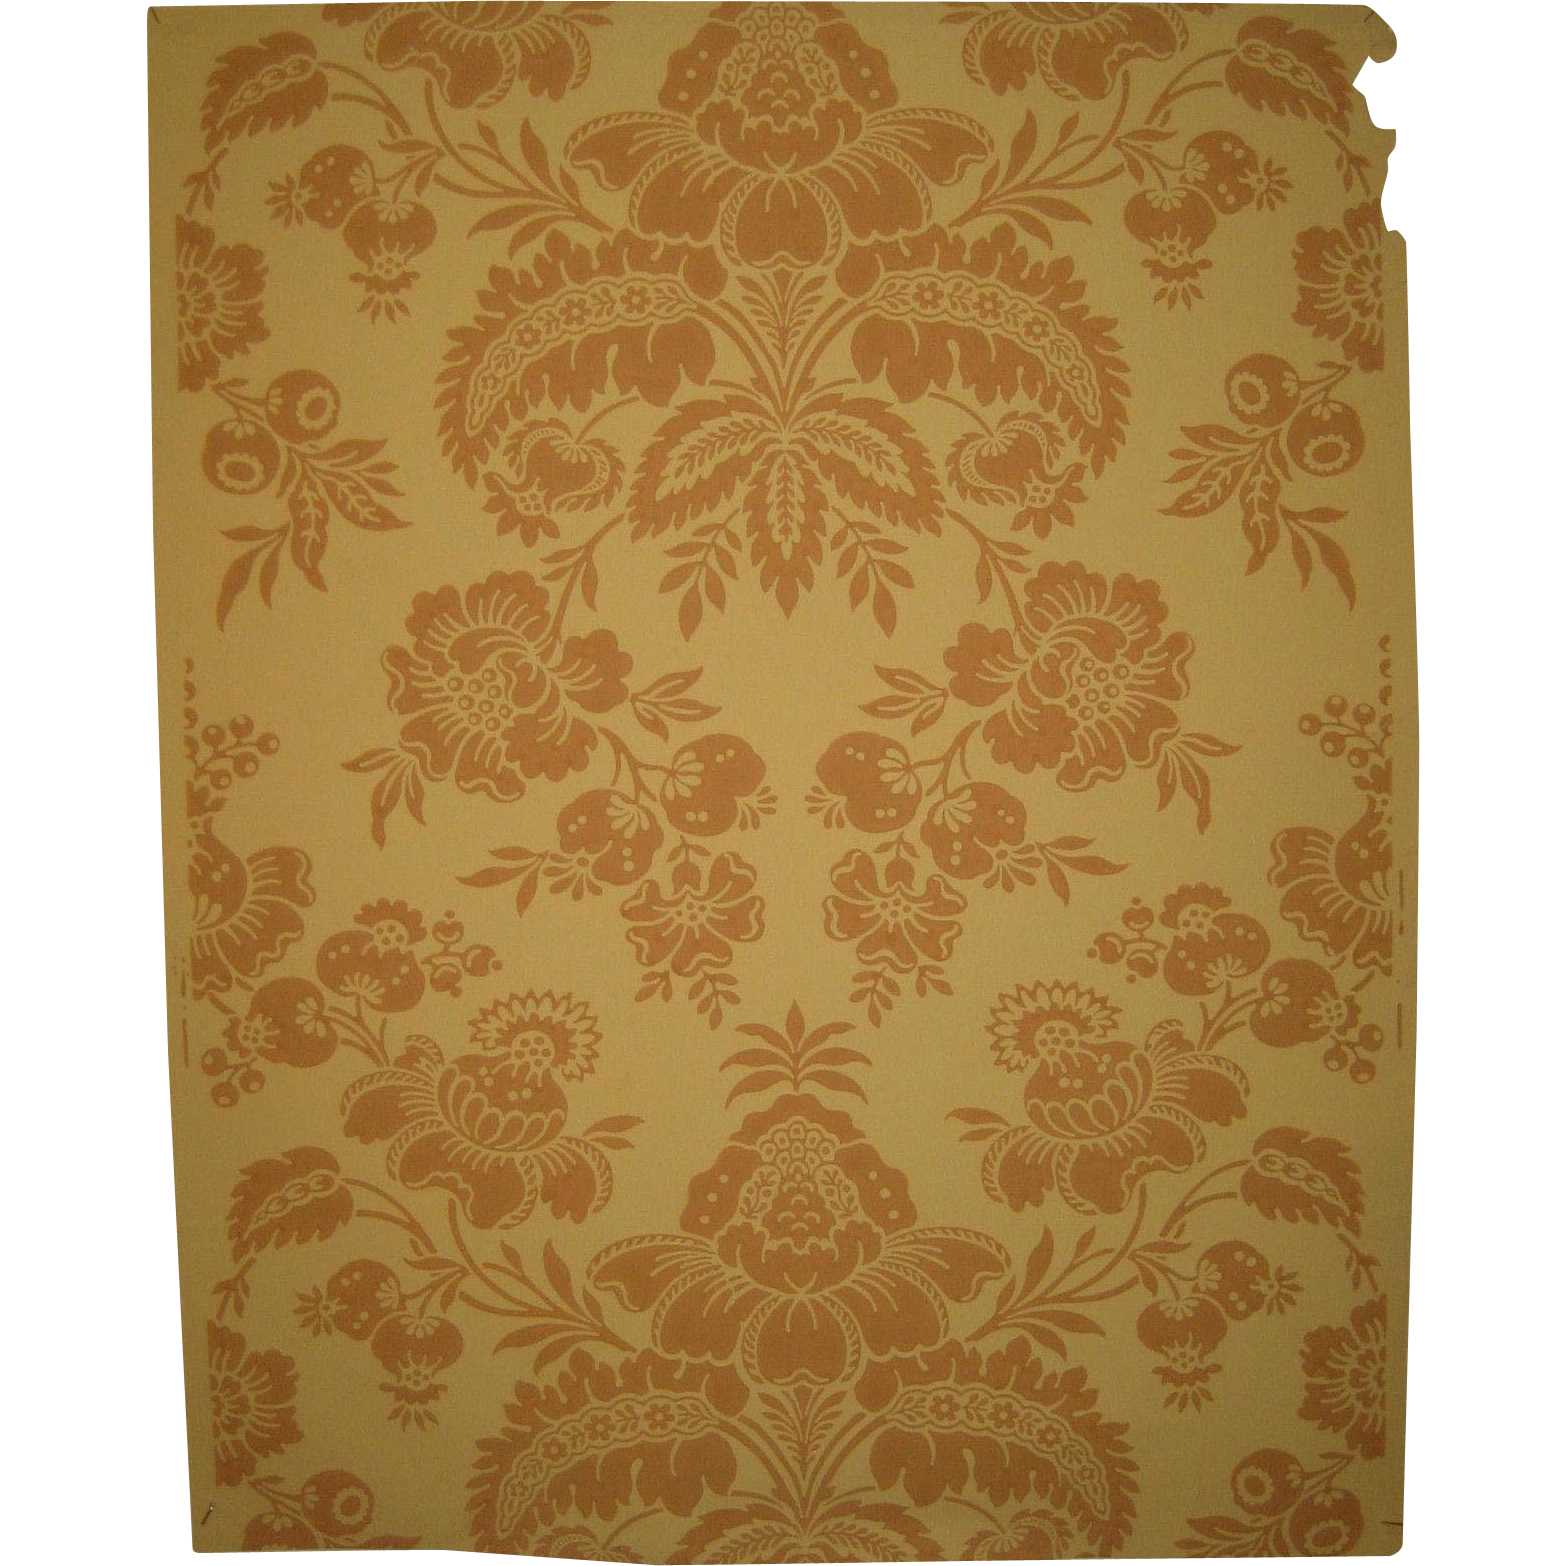 Antique Beautiful 19th C. French Damask Wallpaper (9008)